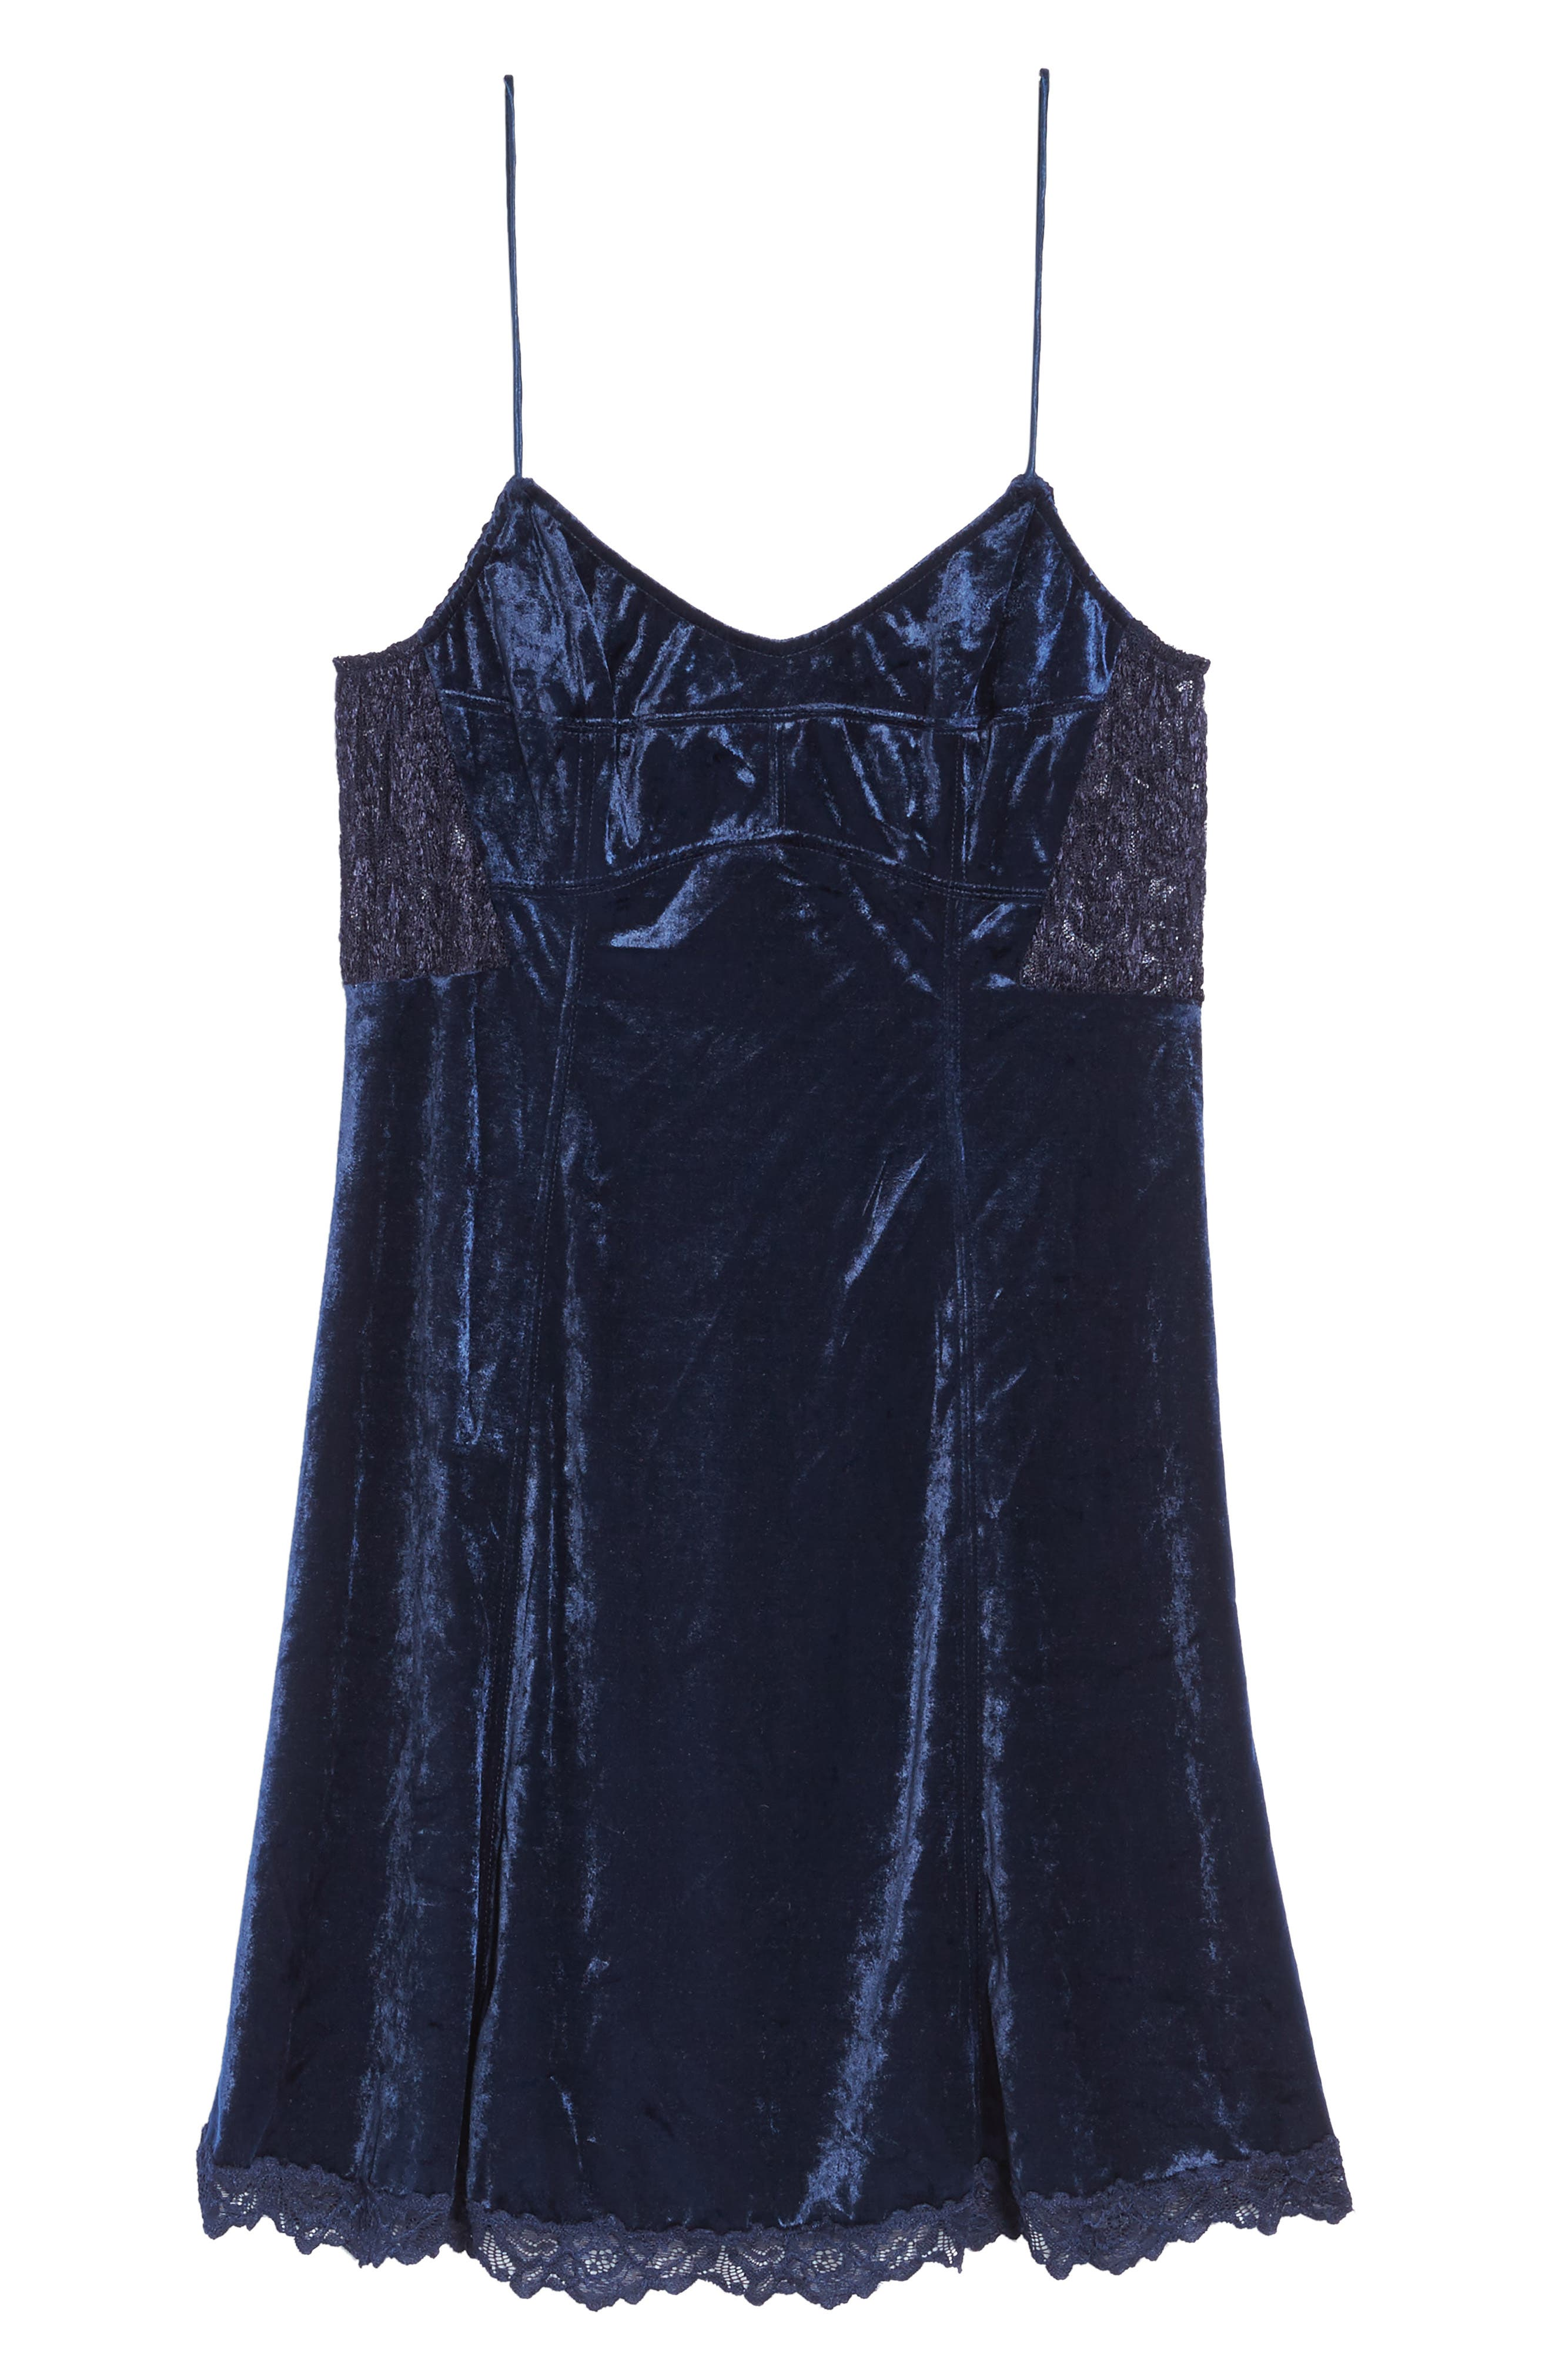 Intimately FP Velvet Chemise,                             Alternate thumbnail 6, color,                             400